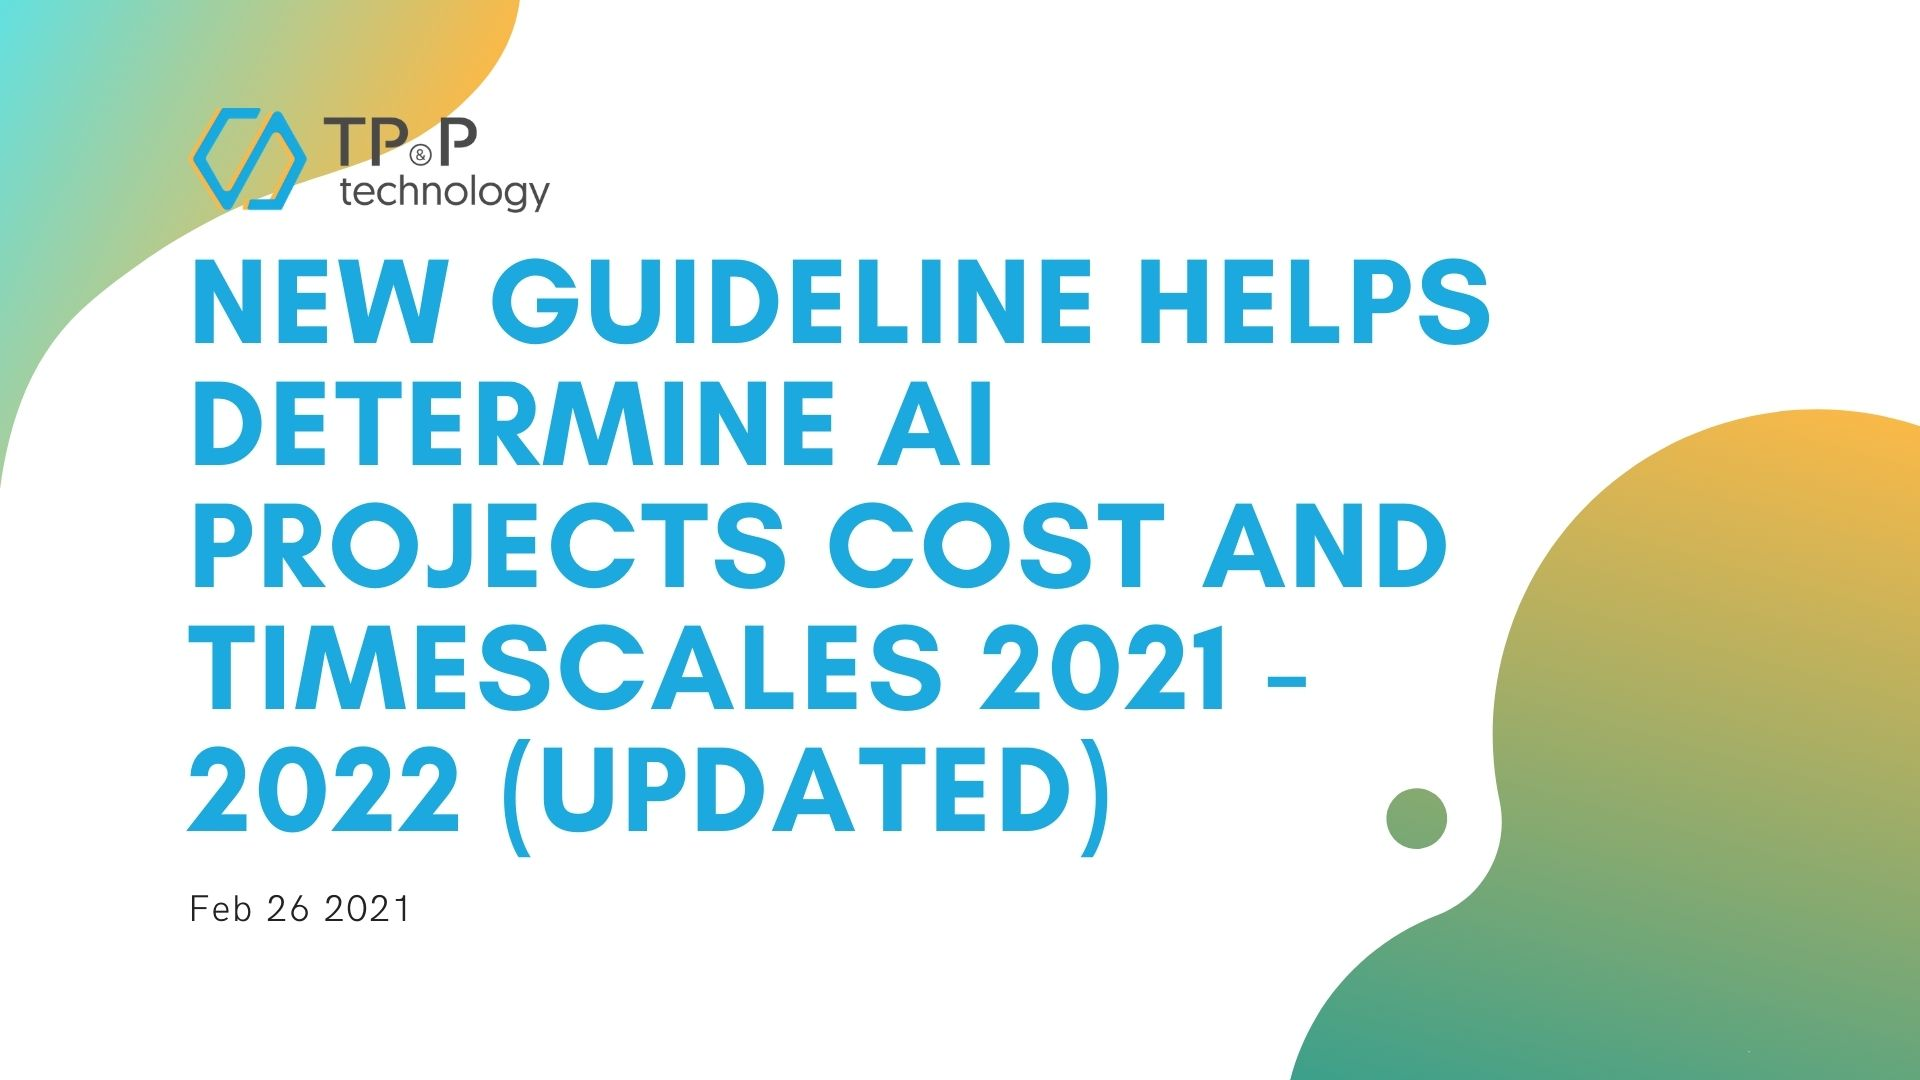 New Guideline Helps Determine AI Projects Cost and Timescales 2021 - 2022 (Updated)